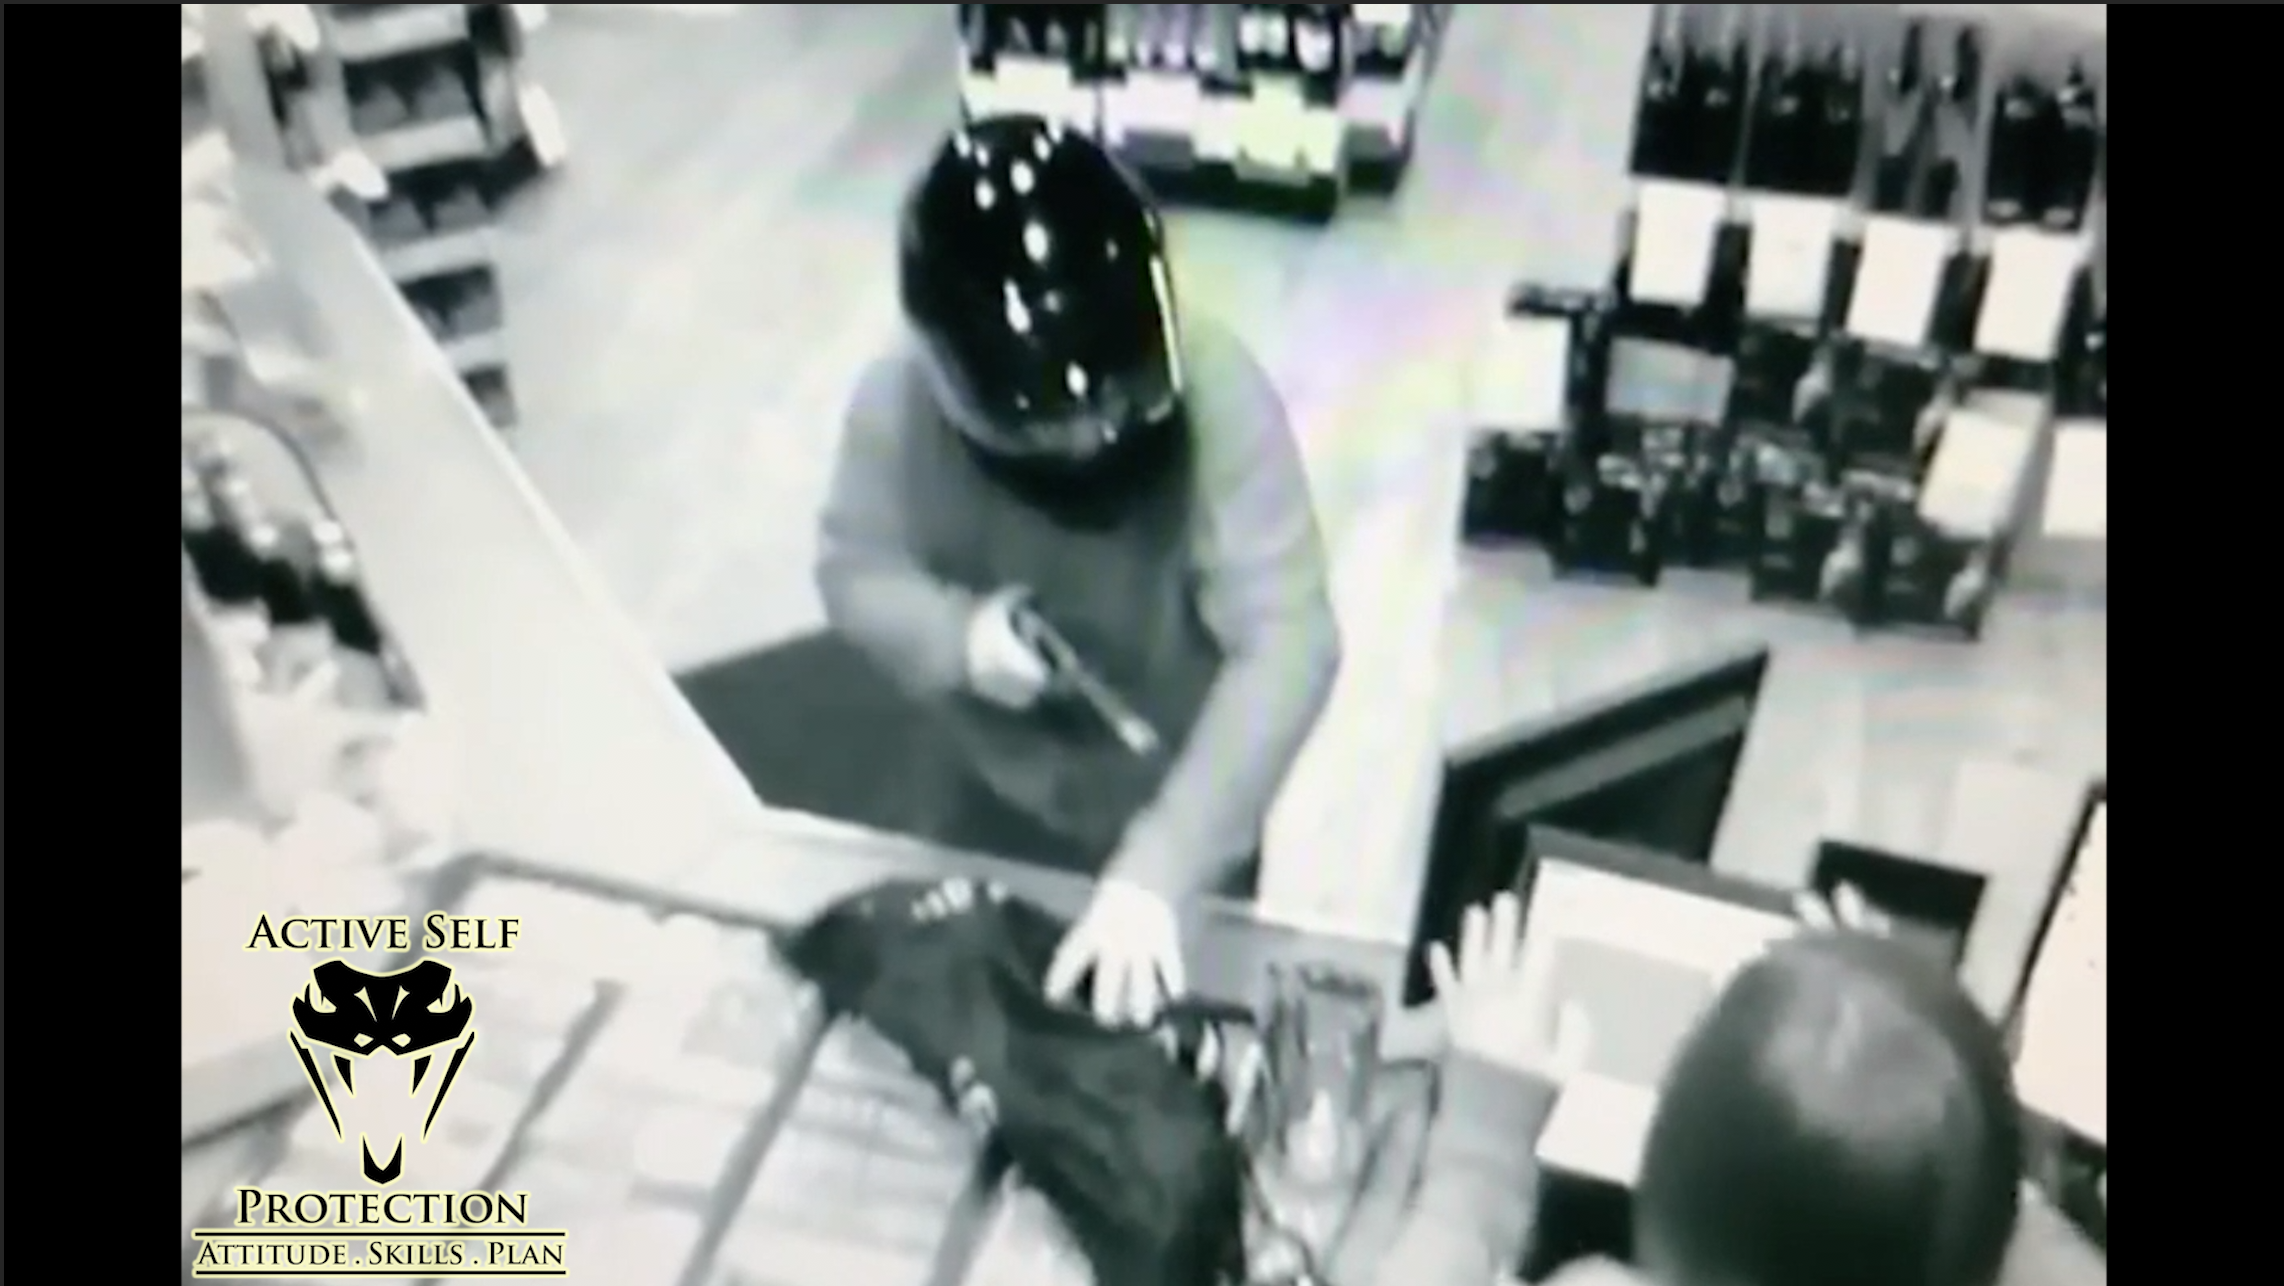 armed robber has the drop on the clerk